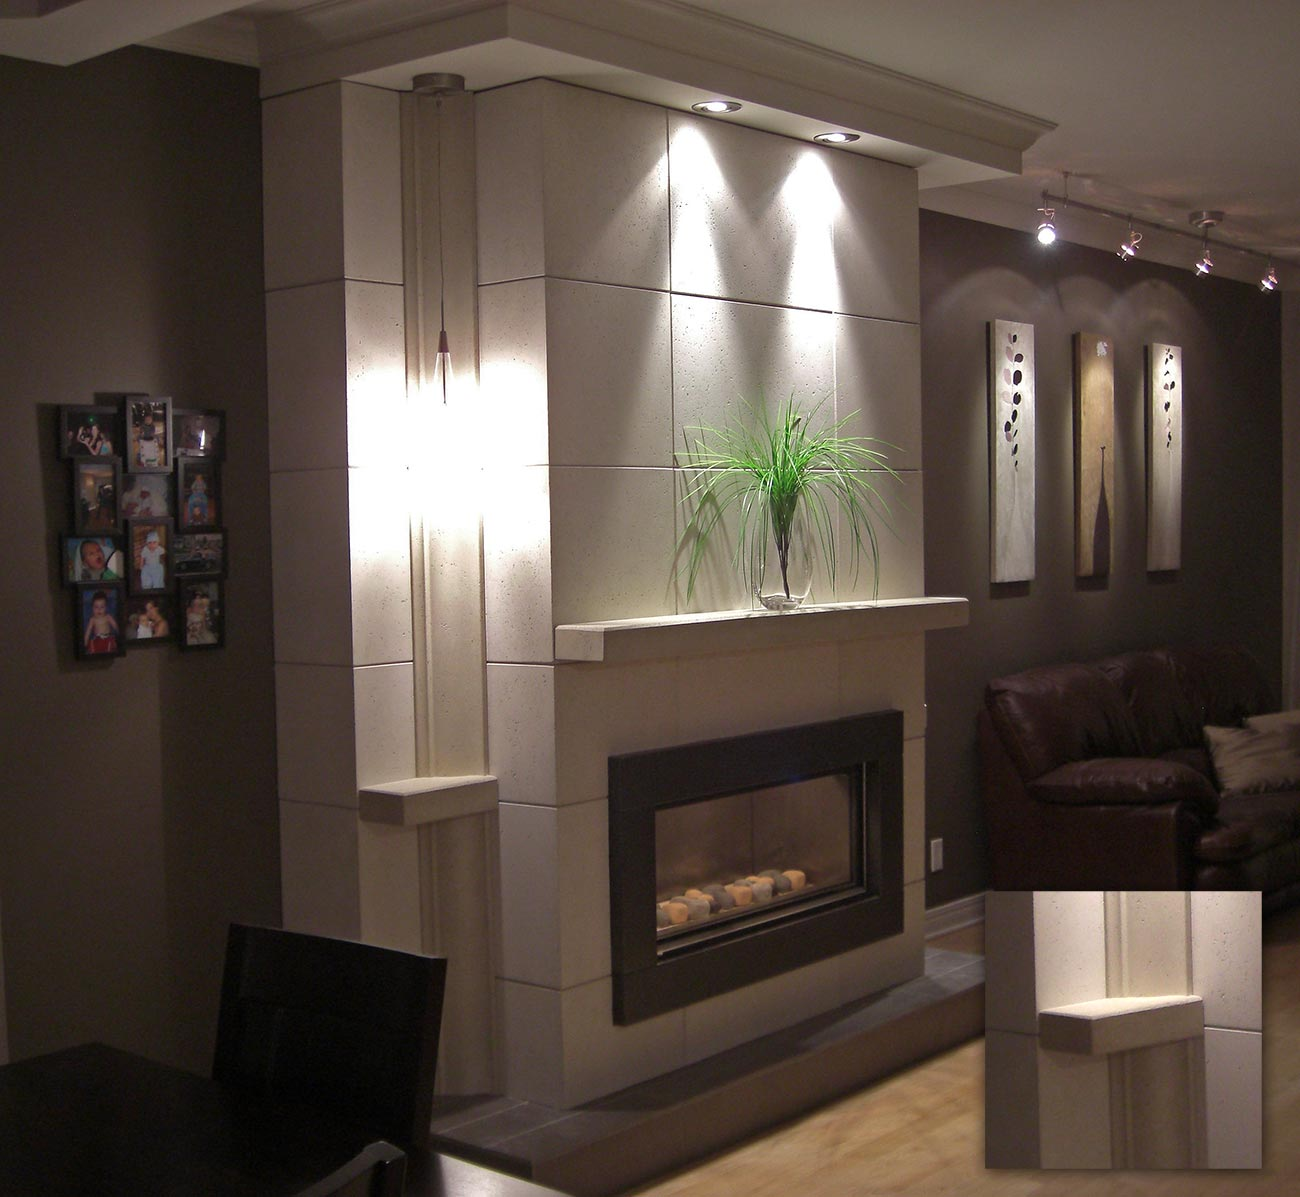 fini plus mantels wall covering wall shelves. Black Bedroom Furniture Sets. Home Design Ideas